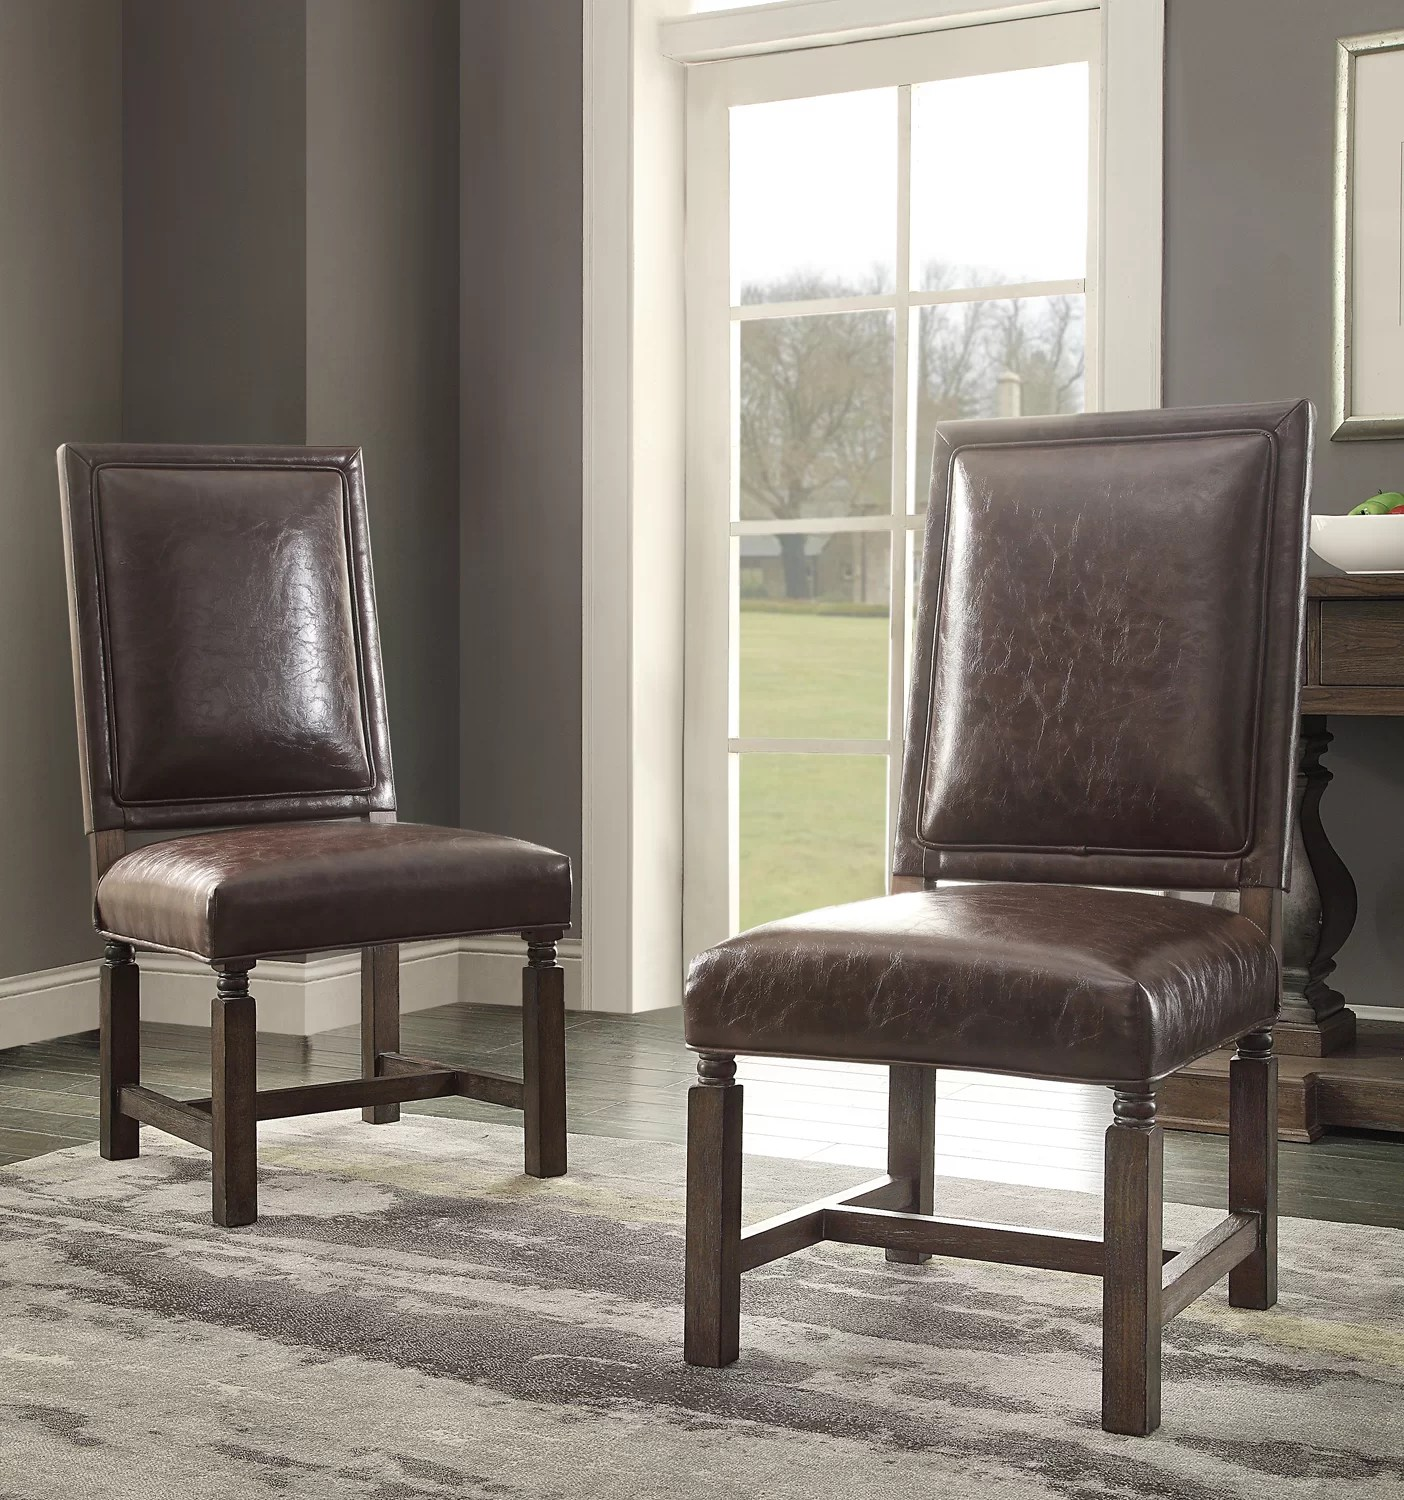 distressed dining chairs folding chair hazelwood home upholstered wayfair